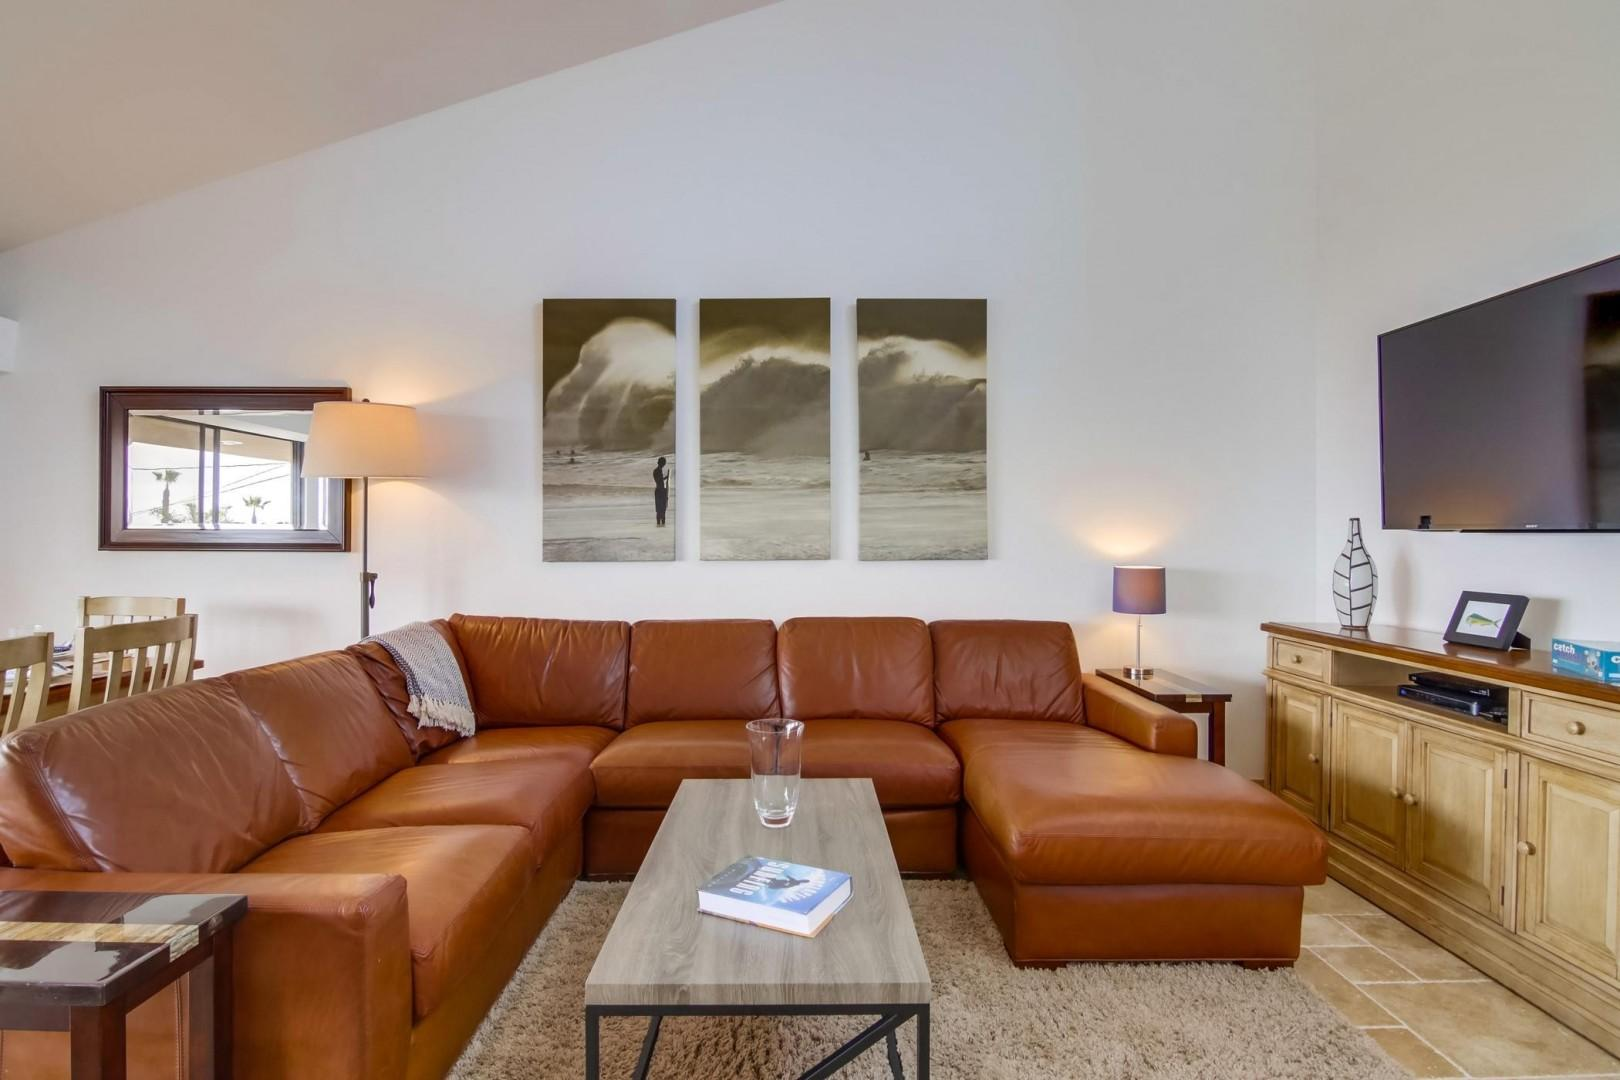 Soft and comfortable leather sectional